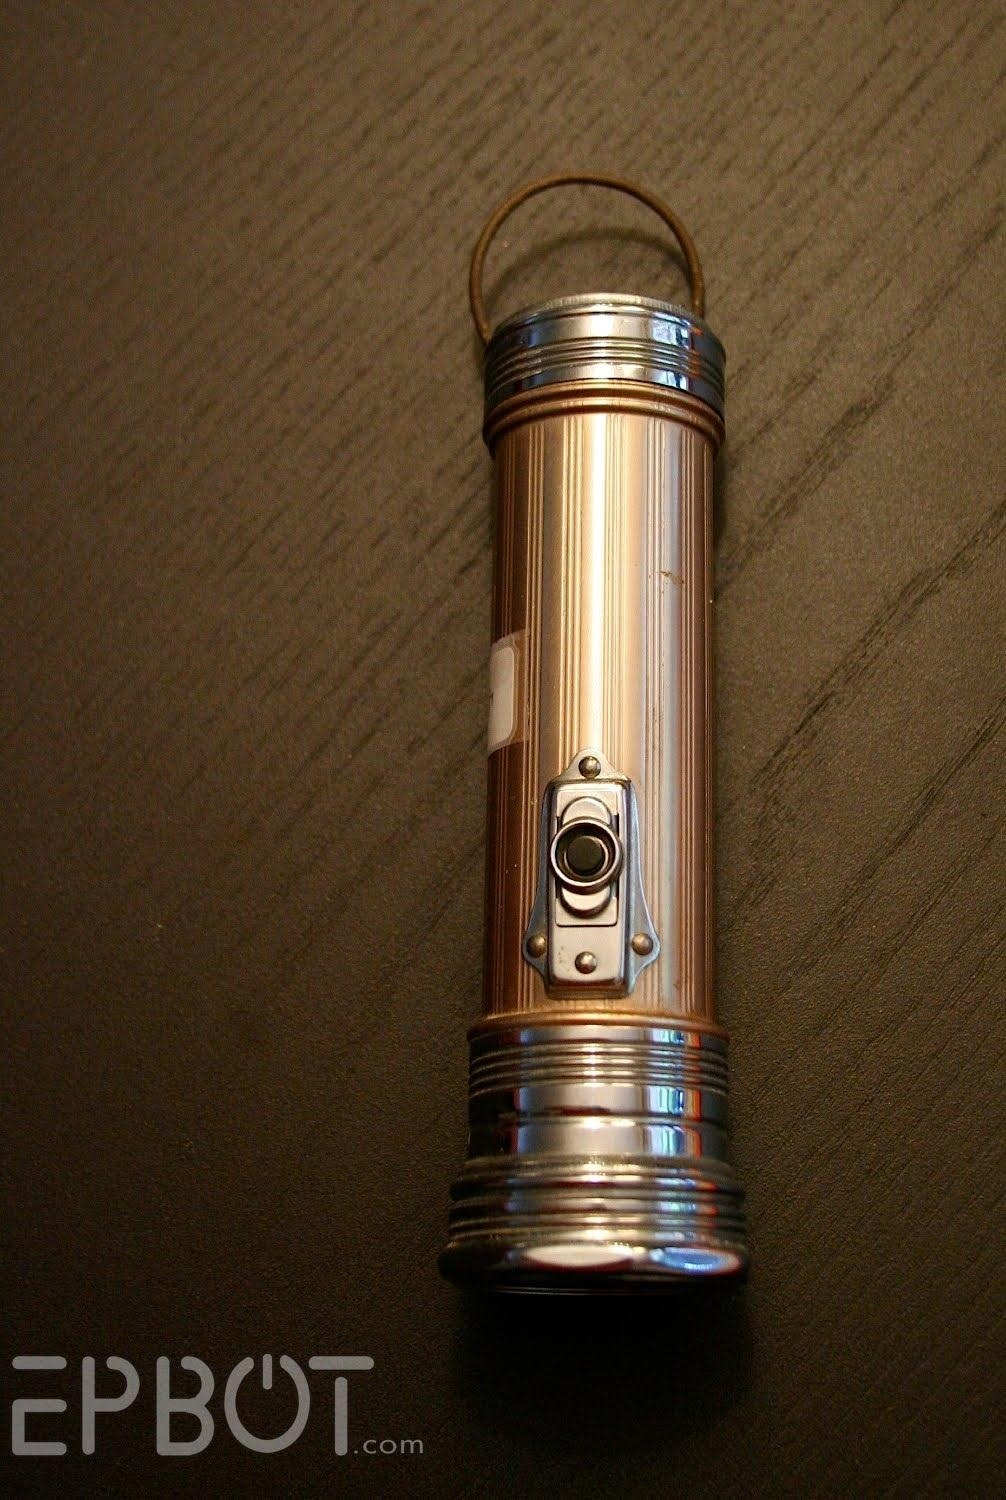 How to Turn a Boring Old Flashlight into a Steampunk Star Wars Lightsaber